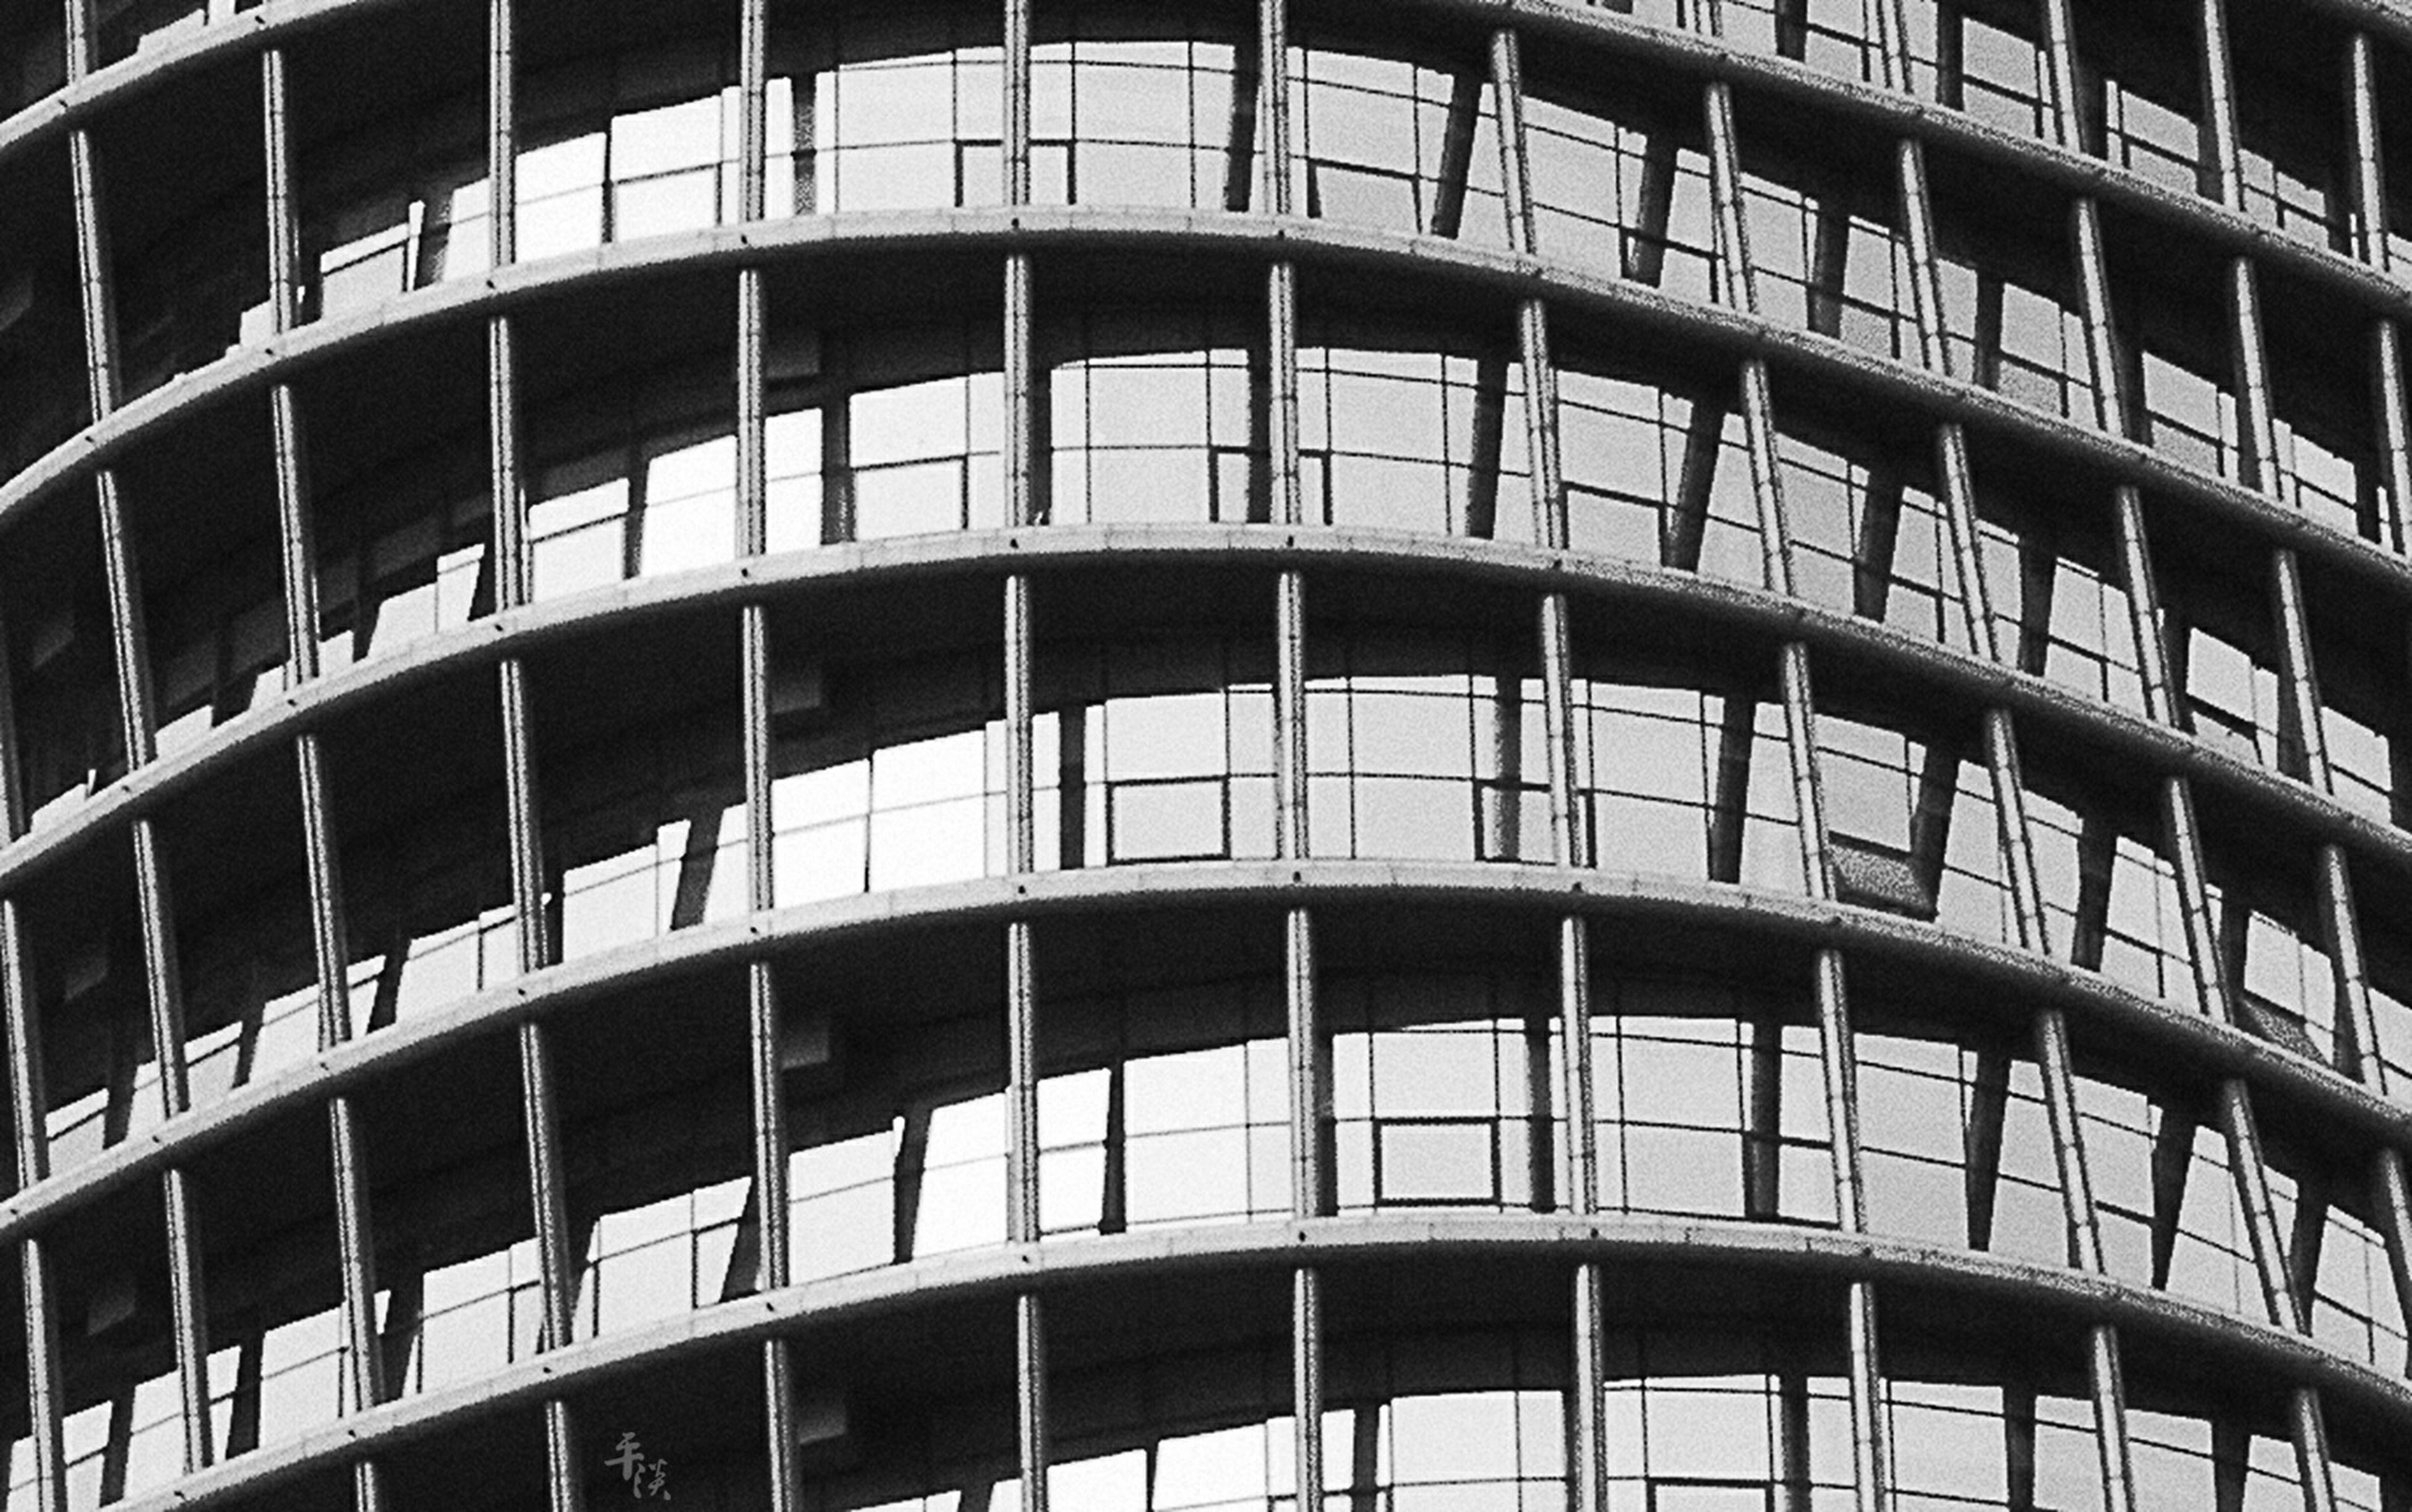 architecture, built structure, building exterior, low angle view, modern, window, pattern, full frame, building, repetition, city, backgrounds, architectural feature, reflection, glass - material, office building, design, geometric shape, no people, shape